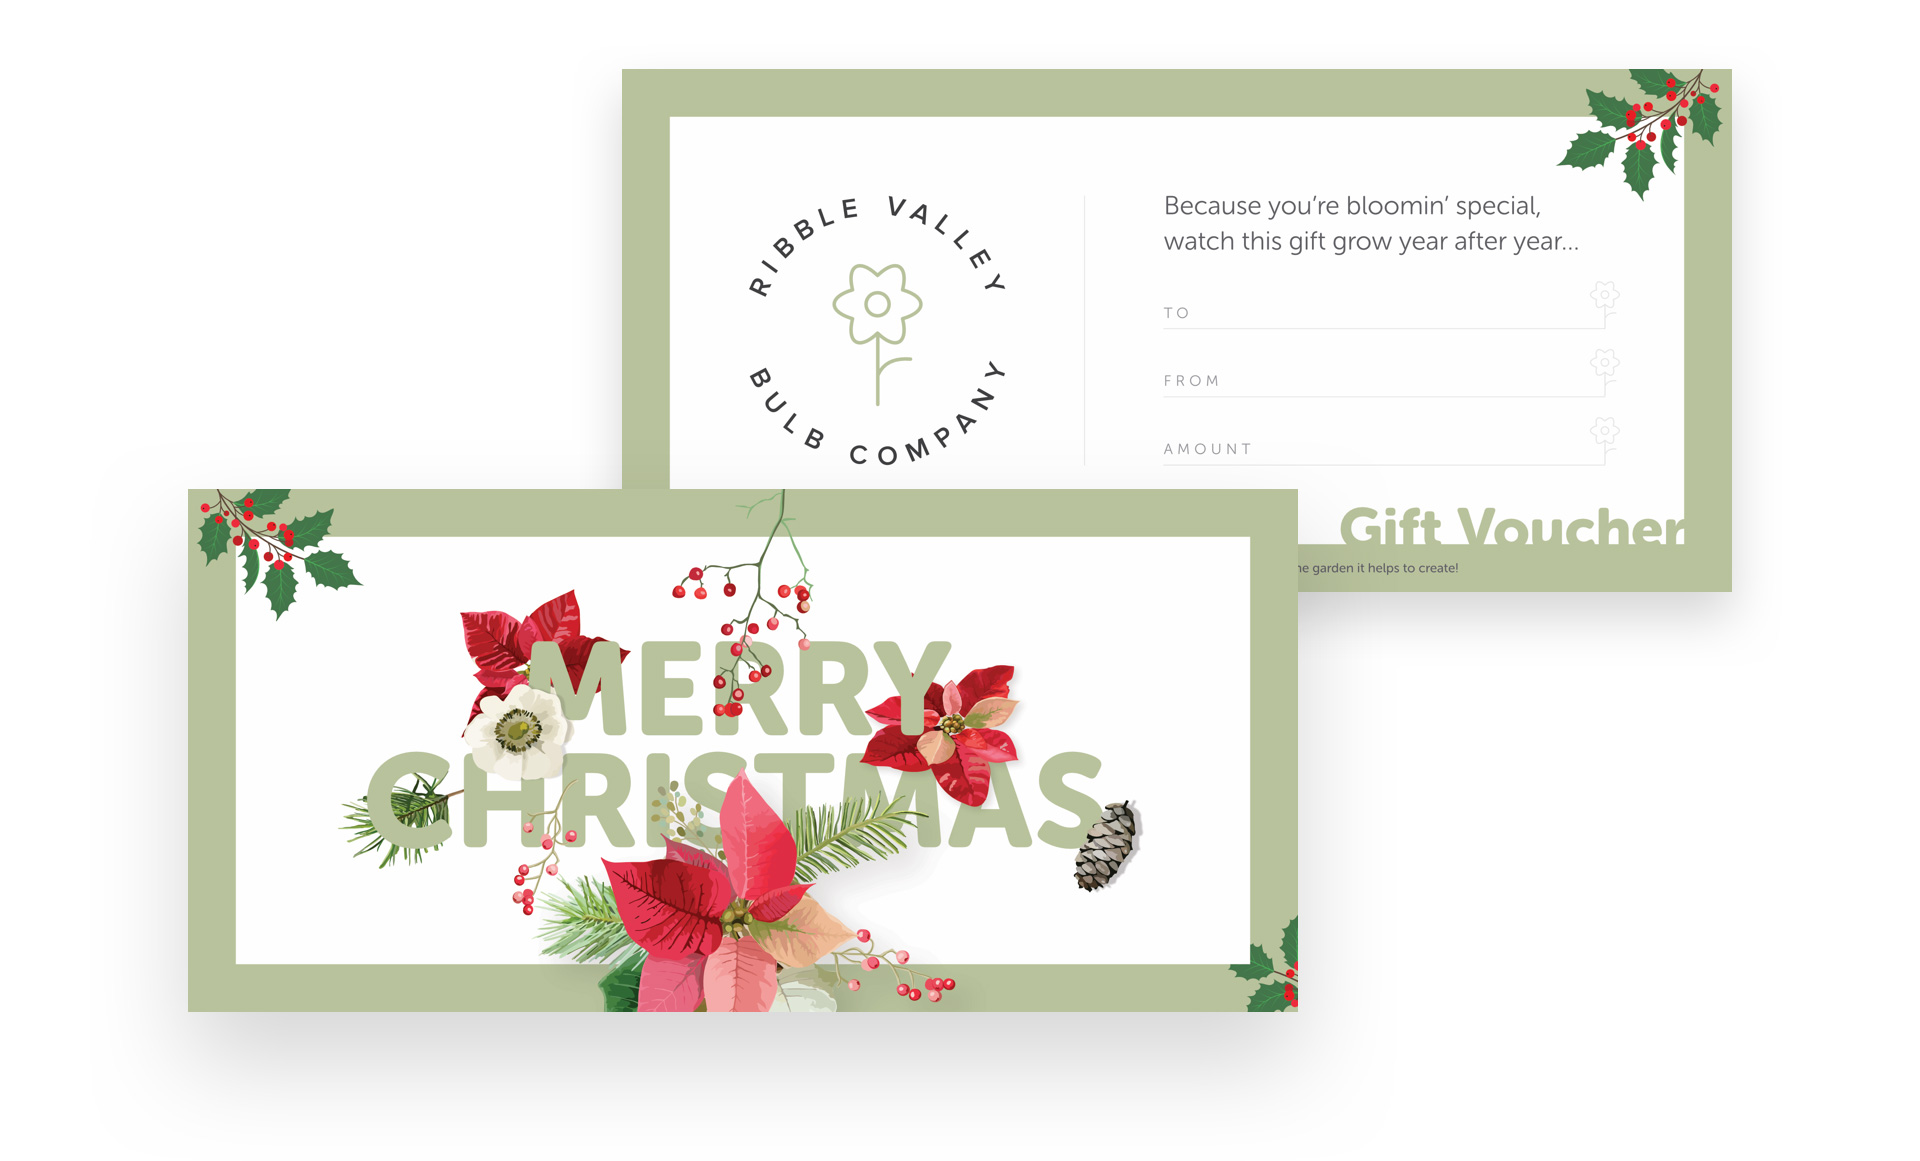 Print design and voucher design for Ribble Valley Bulb Company